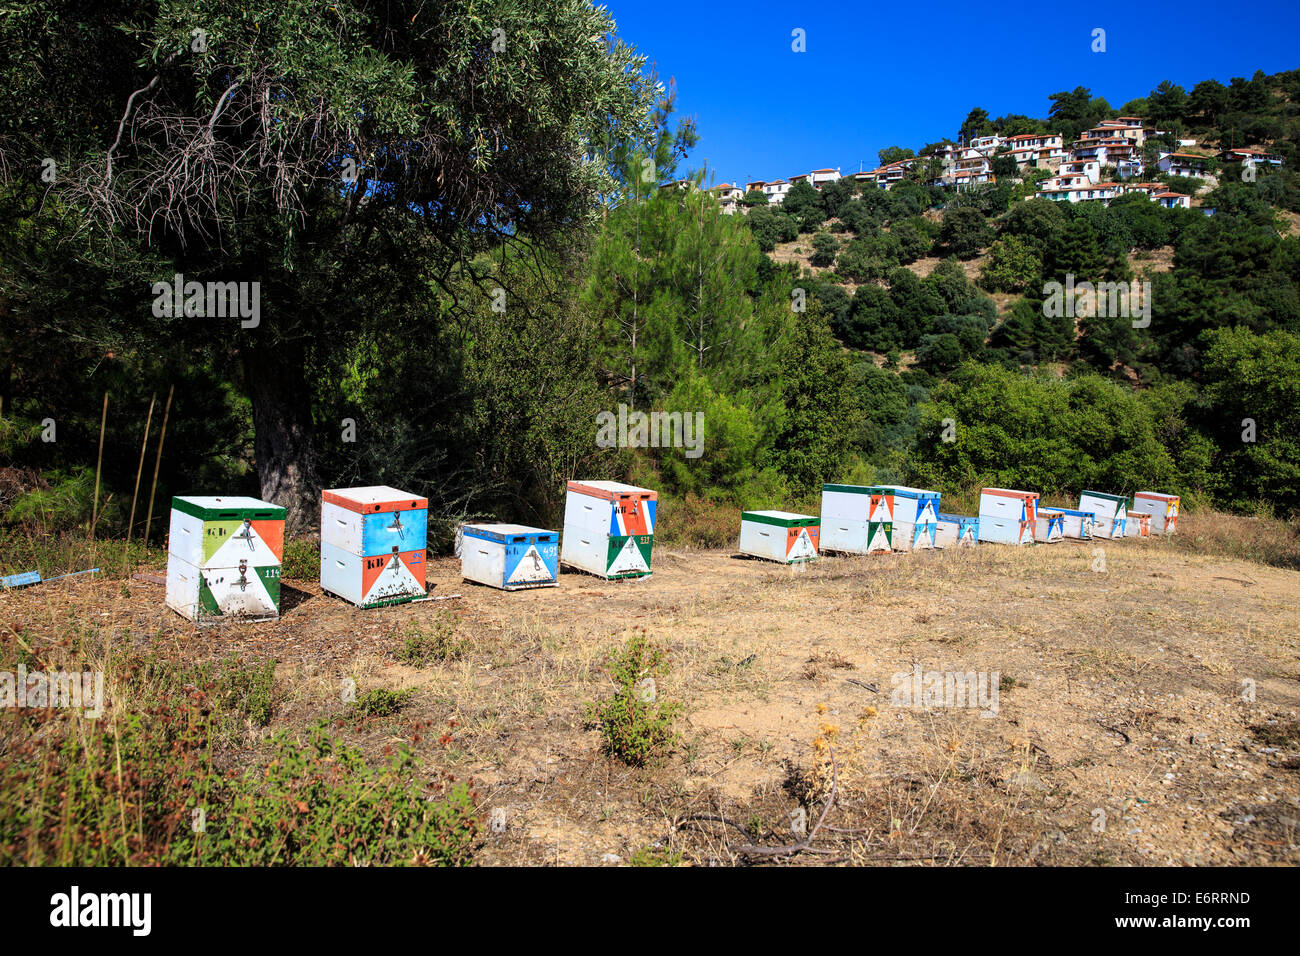 Beehives and the village of Sotiras in the background - Stock Image